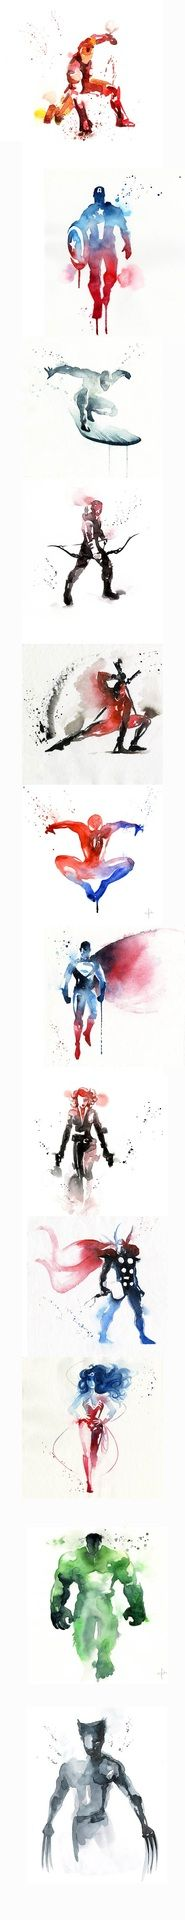 Cool Superheroes Art     (Yeah, i know, it's not completely Marvel but i have no where else to put it.)